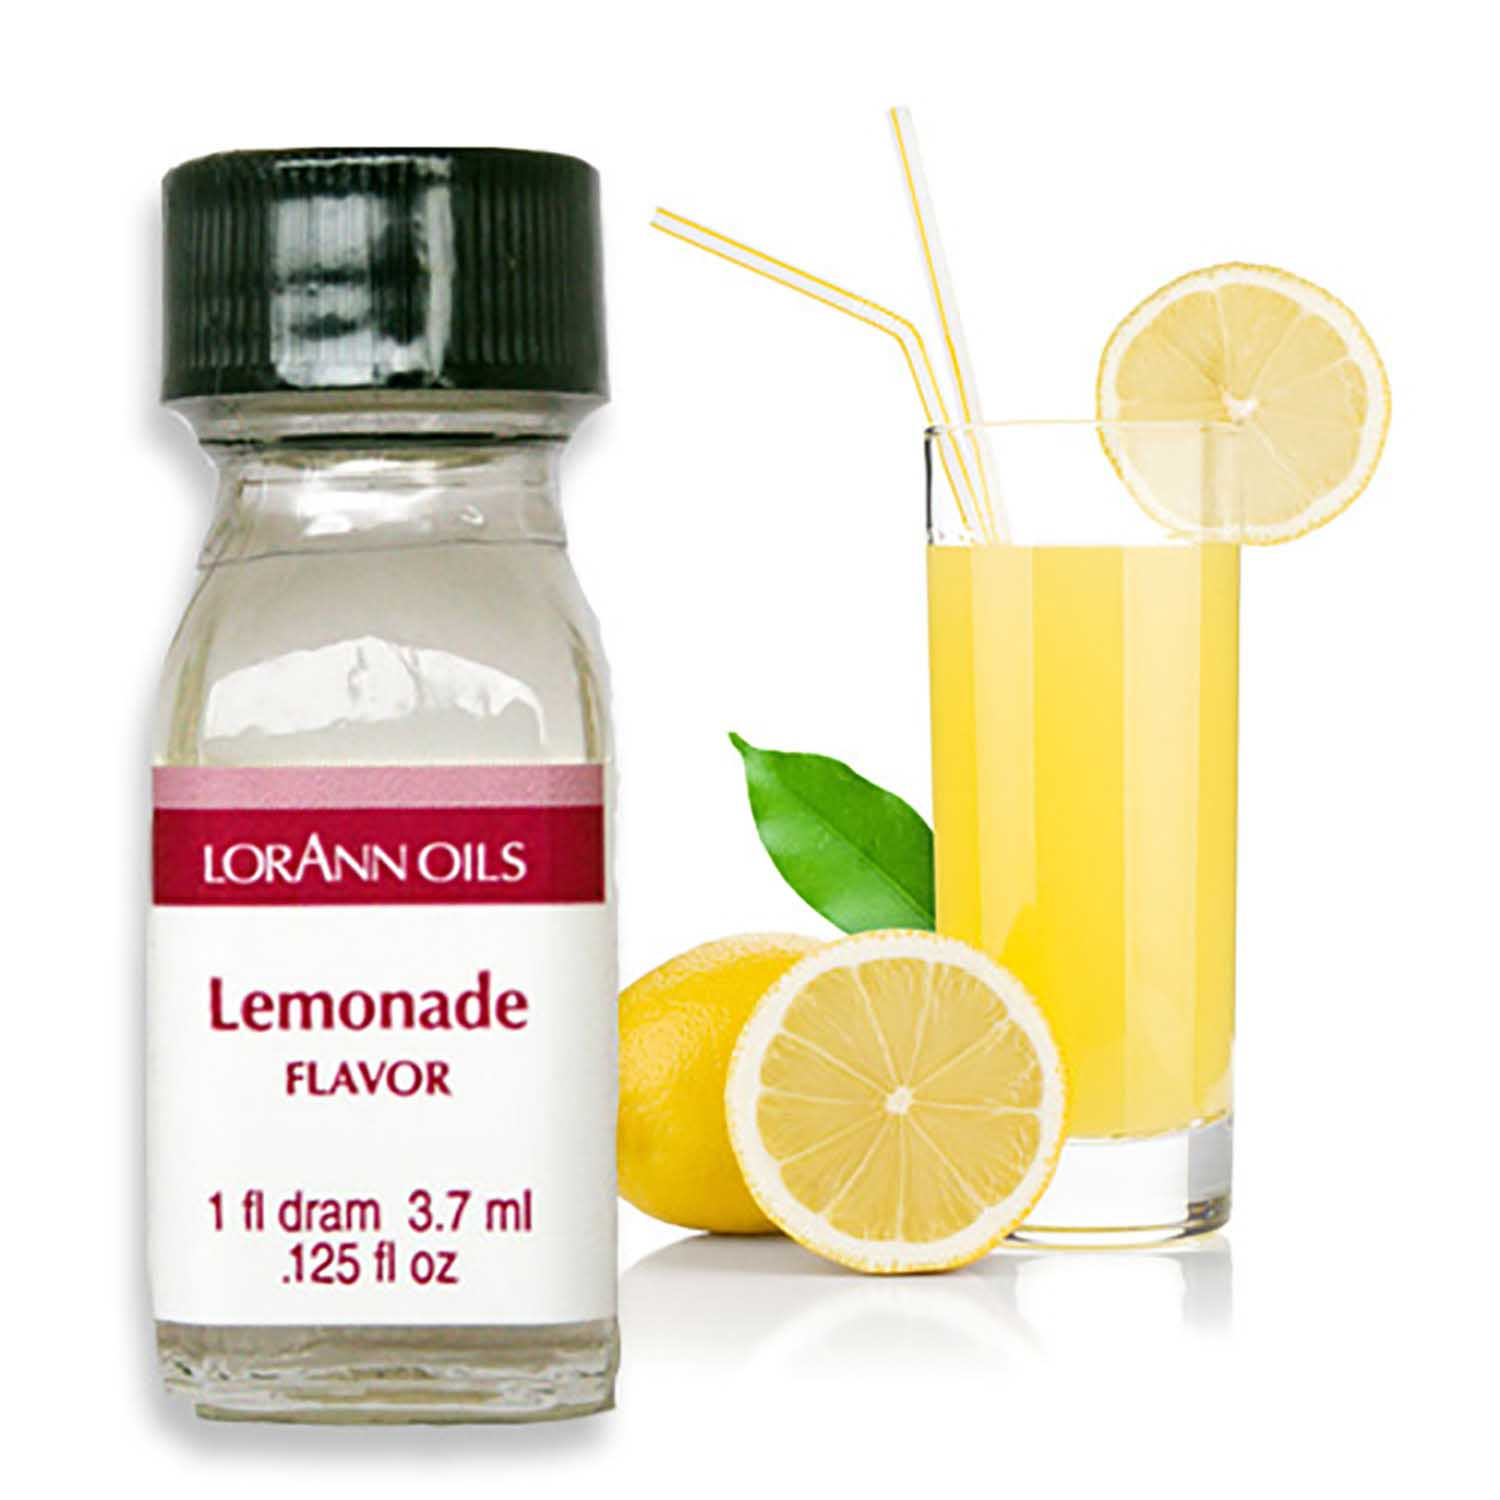 Lemonade LorAnn Super-Strength Flavor